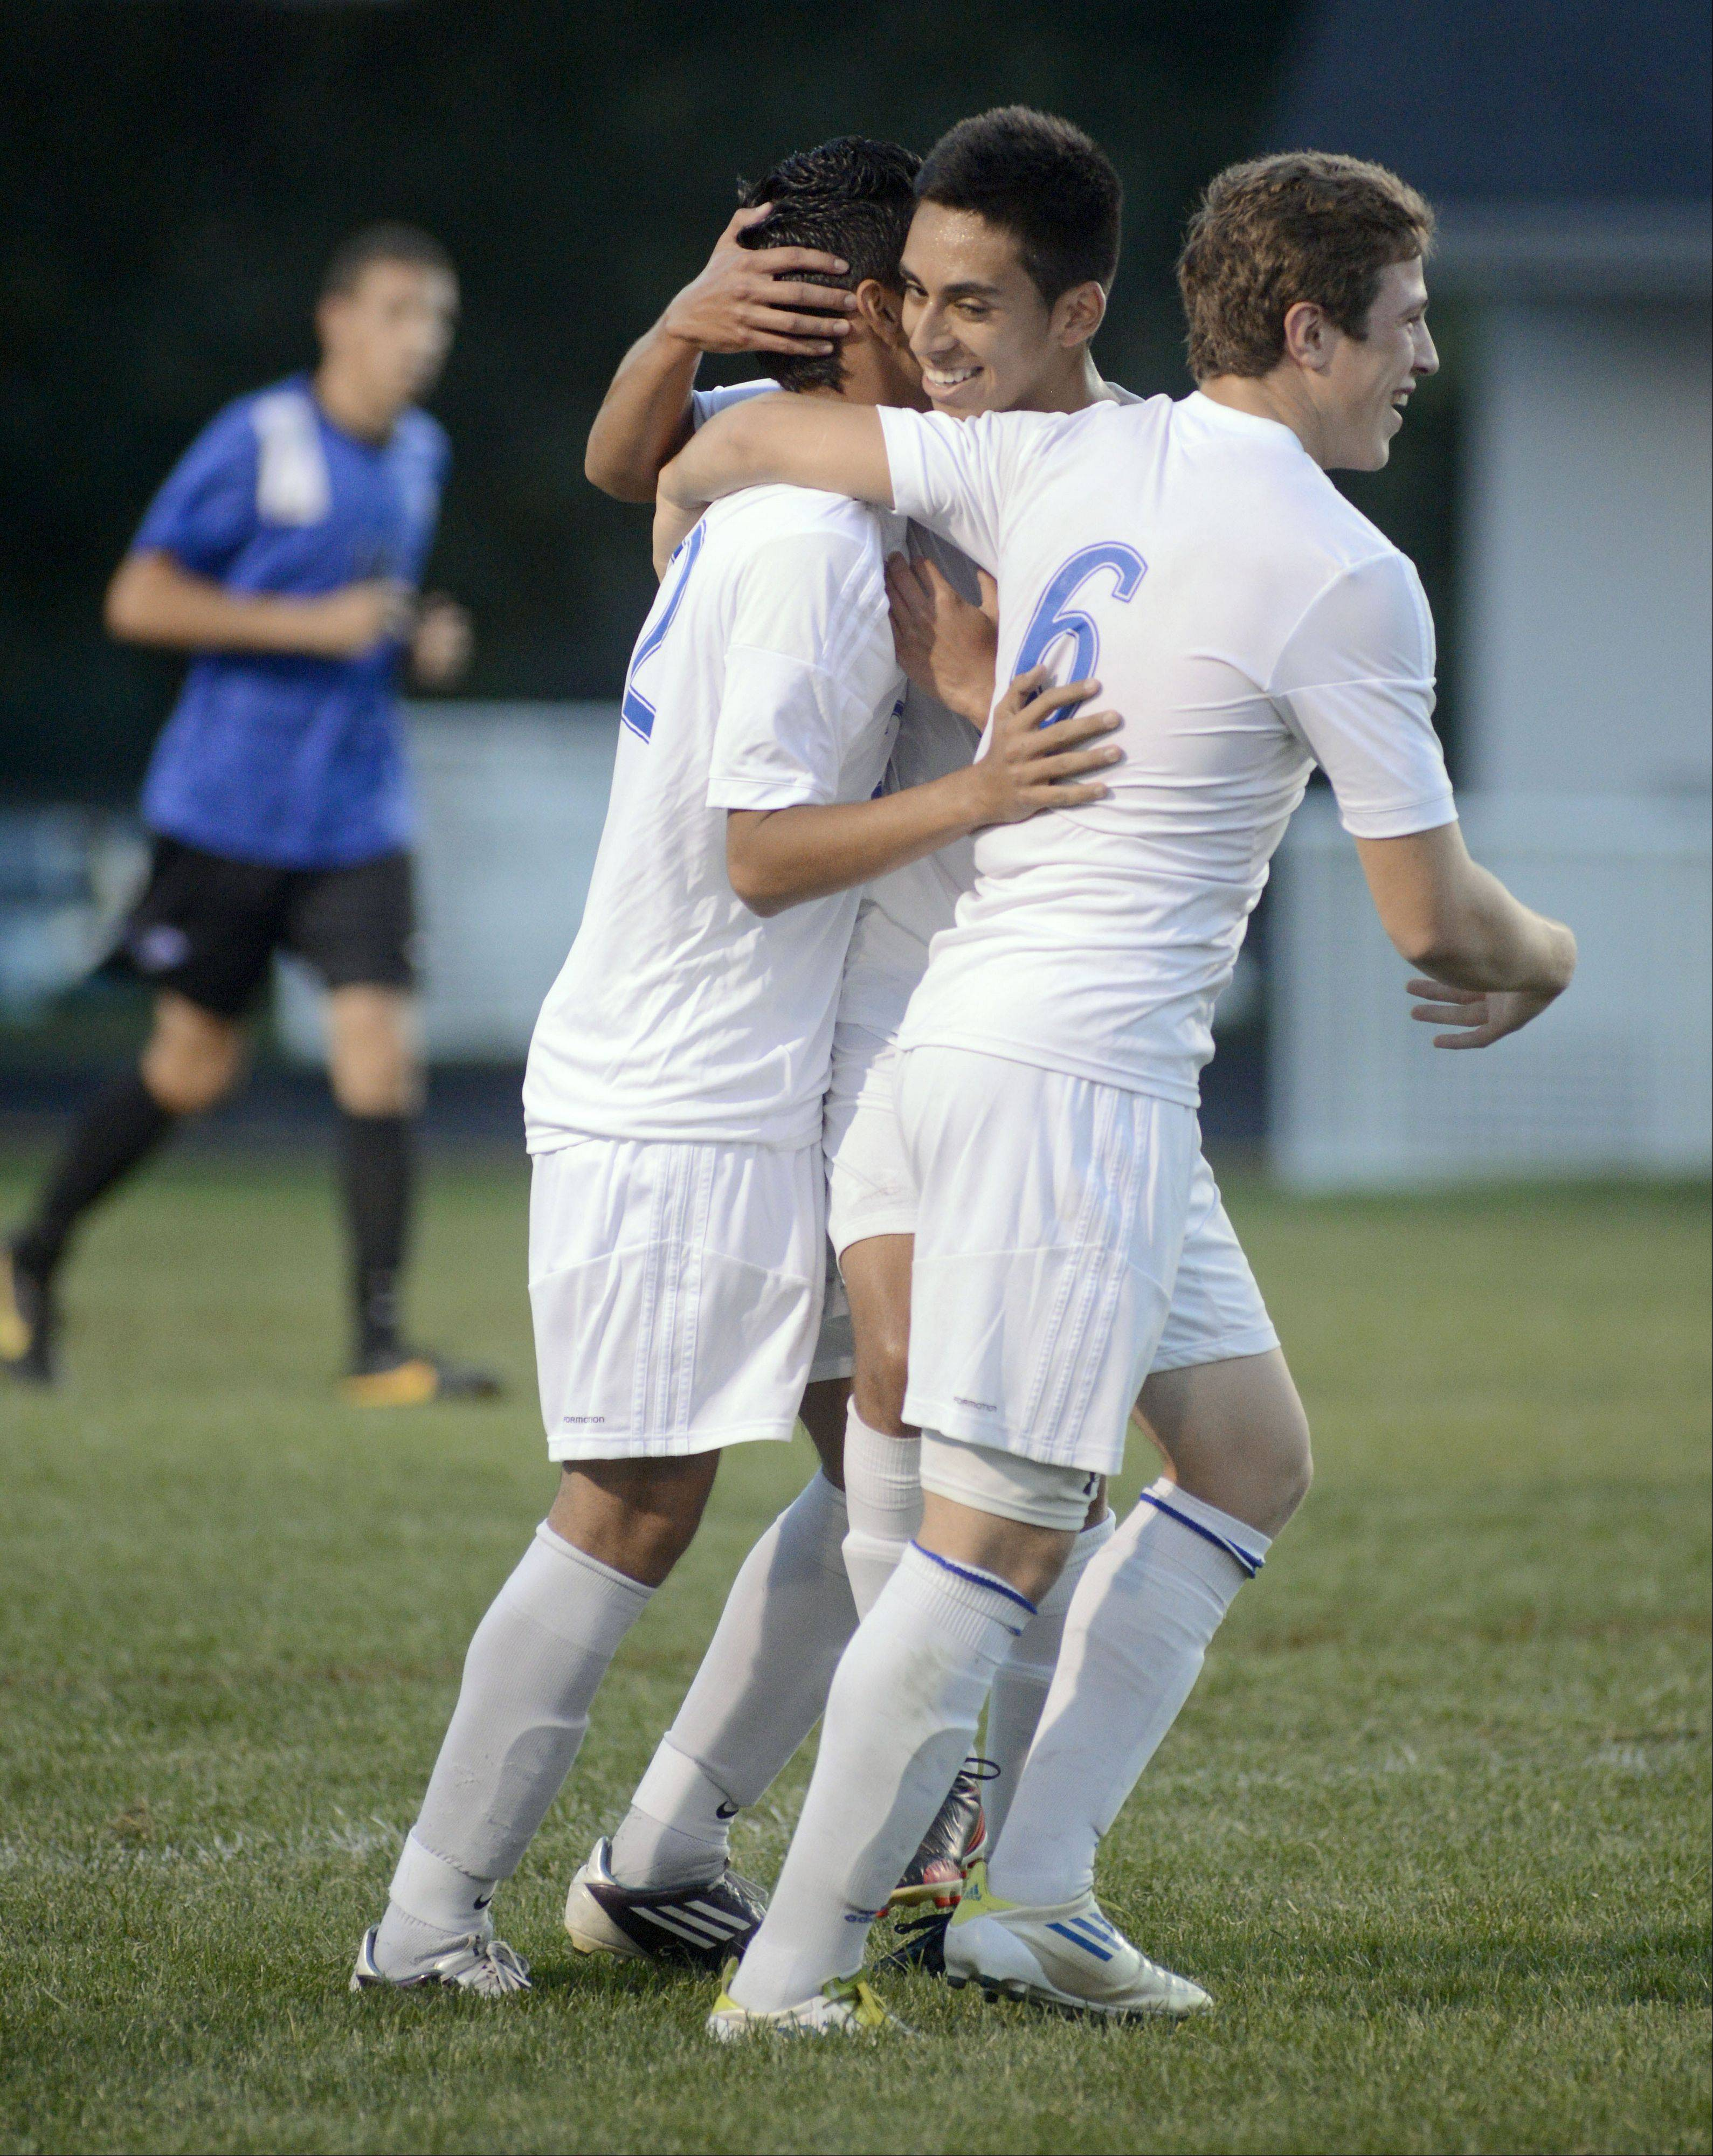 Larkin's Kevin Alas, left, is congratulated by teammates Jesus Avila (facing) and Josh Garcia (6) after scoring the second goal for the Royals in the first half on Tuesday at Memorial Field in Elgin.